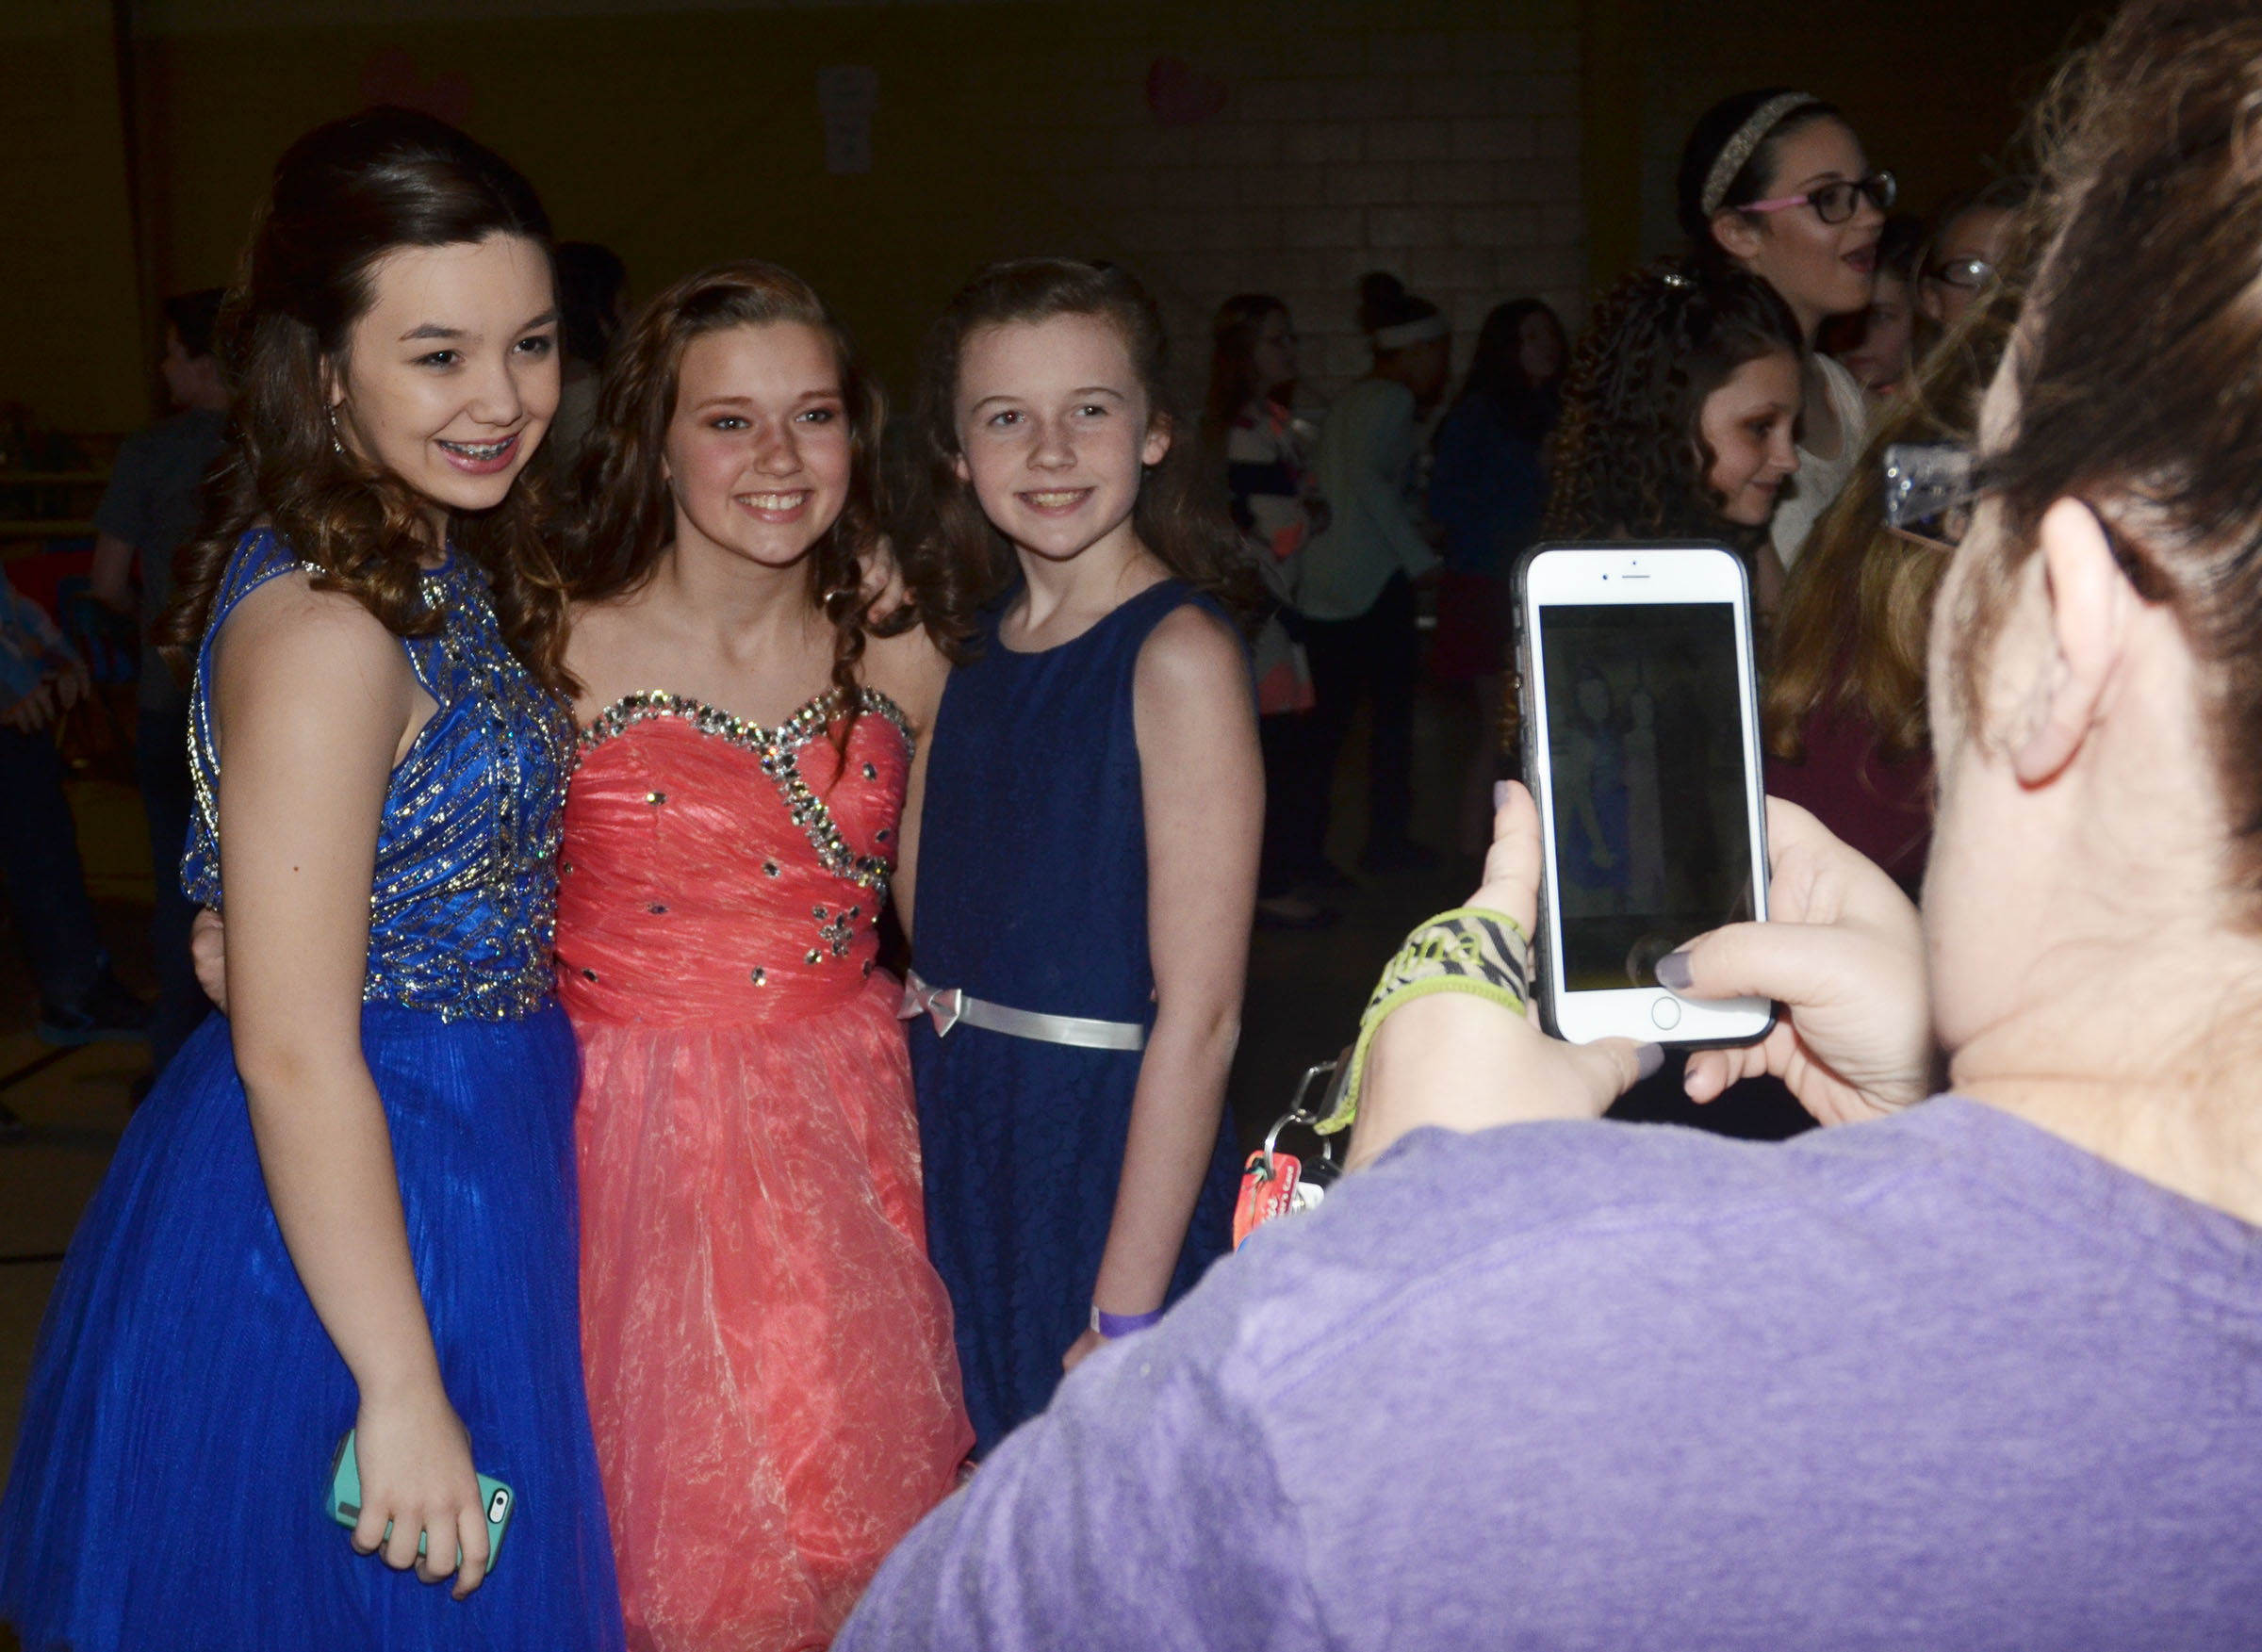 CMS sixth-graders, from left, Olivia Fields, Breanna Humphress and Dakota Slone smile for the camera.